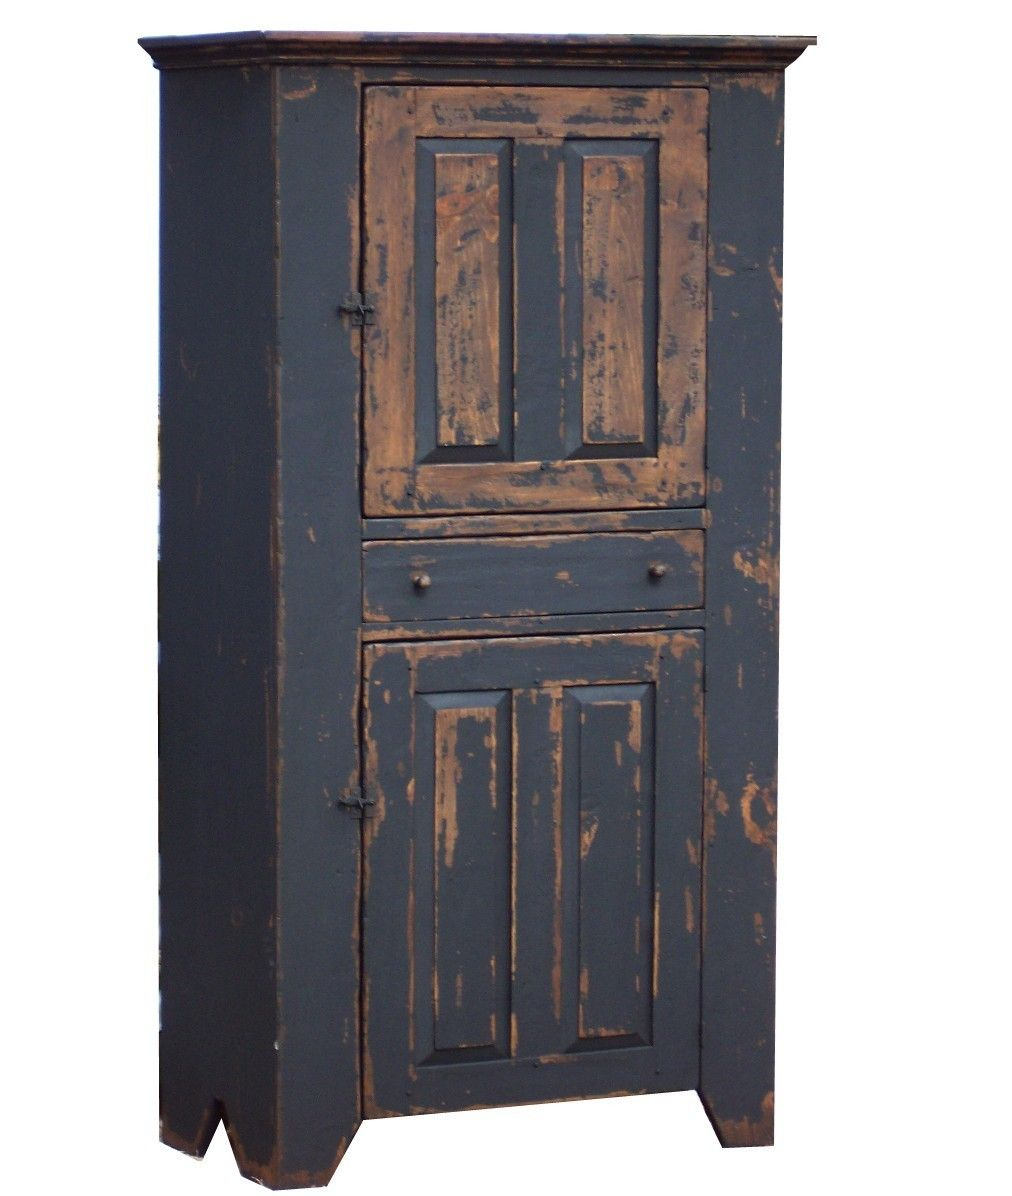 Primitive farmhouse kitchen cupboard cabinet country painted early